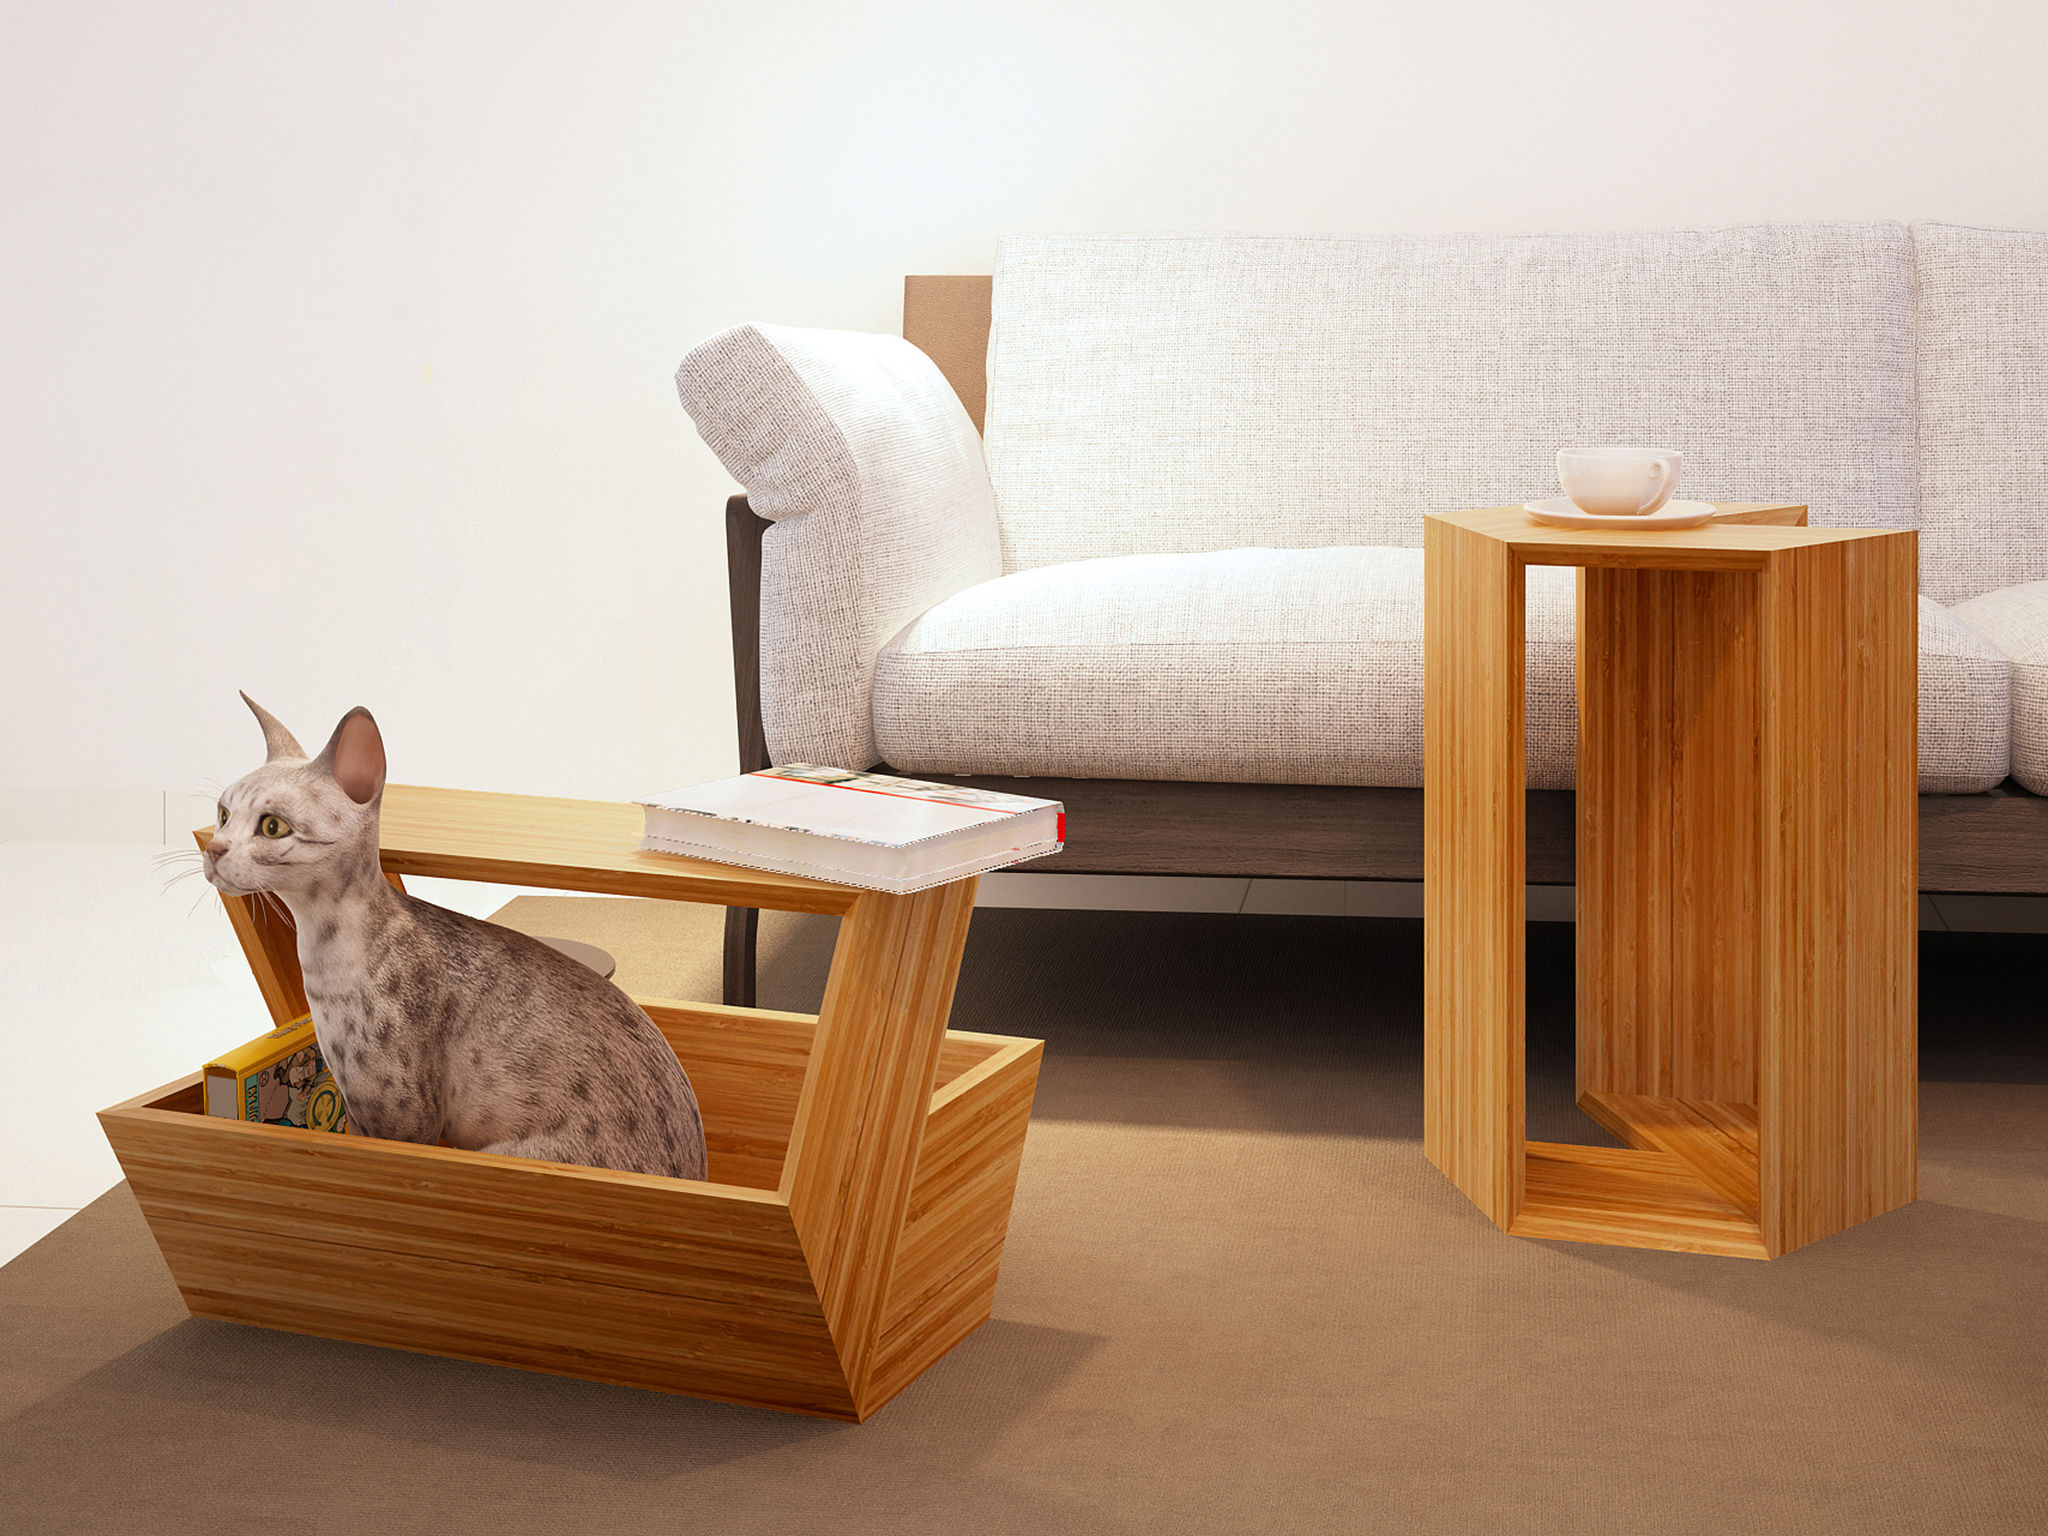 Multipurpose Furniture Entry If World Design Guide